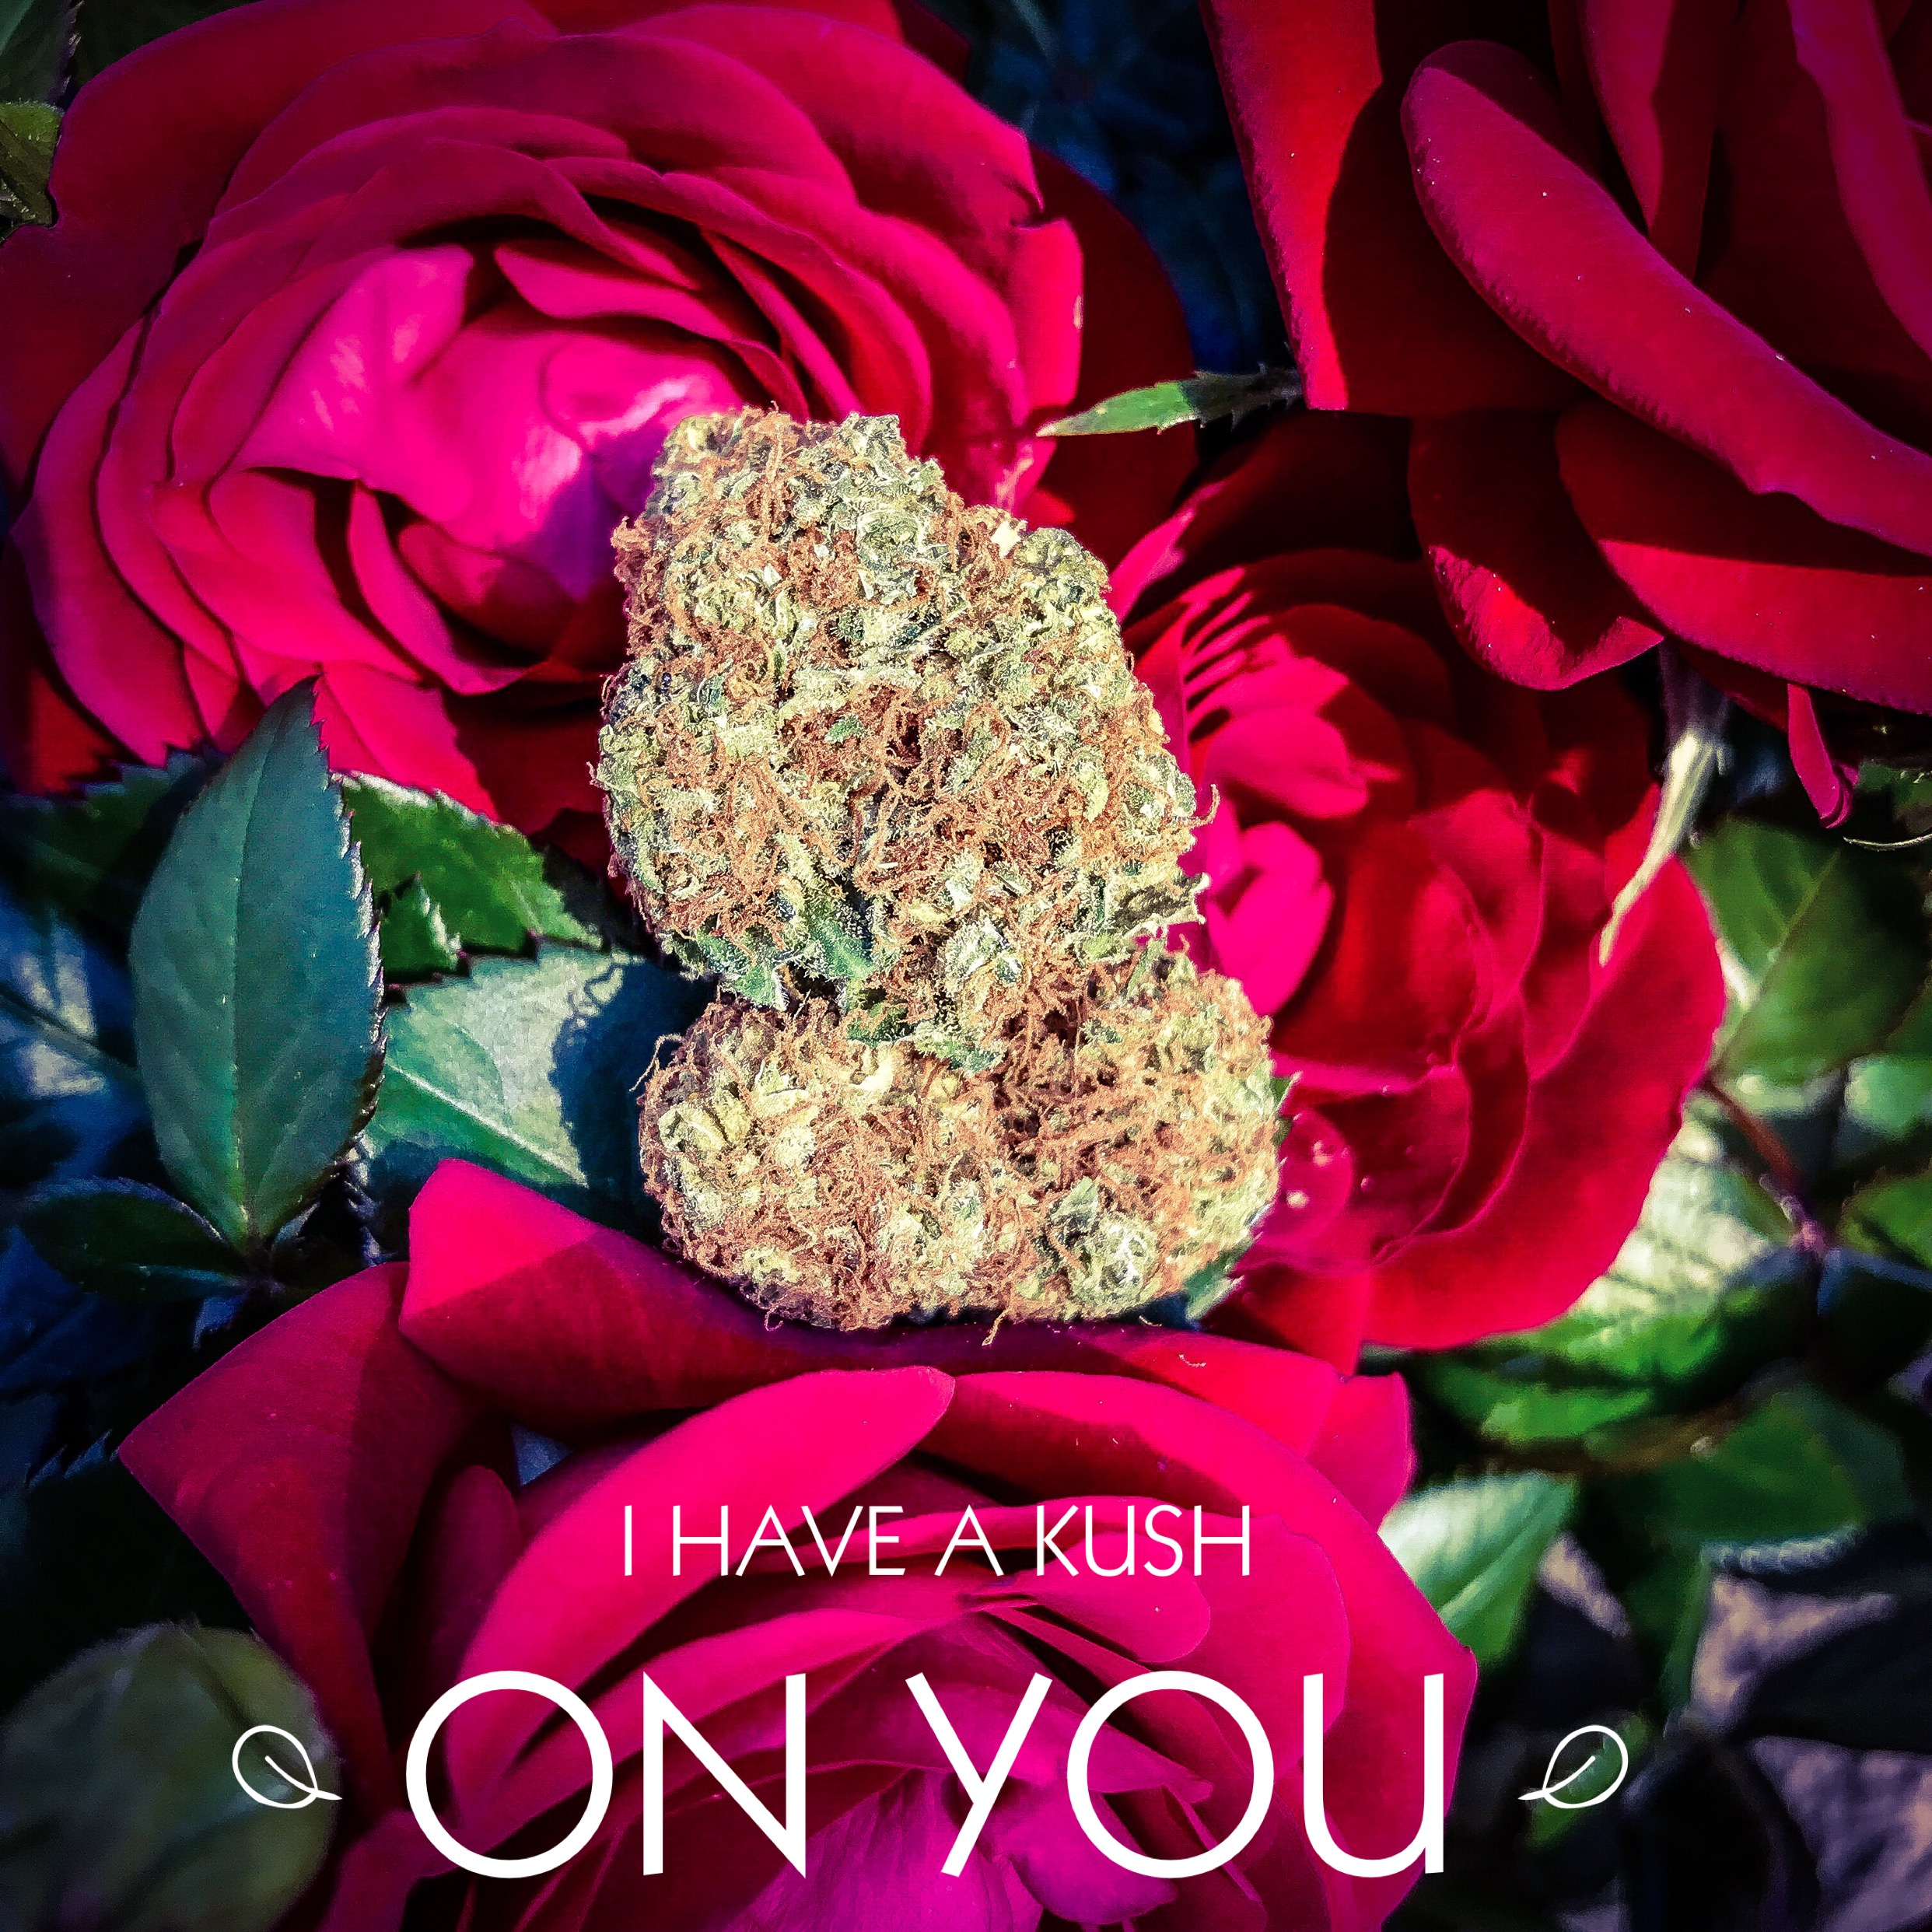 I-have-a-kush-on-you-valentines-marijuana-saints